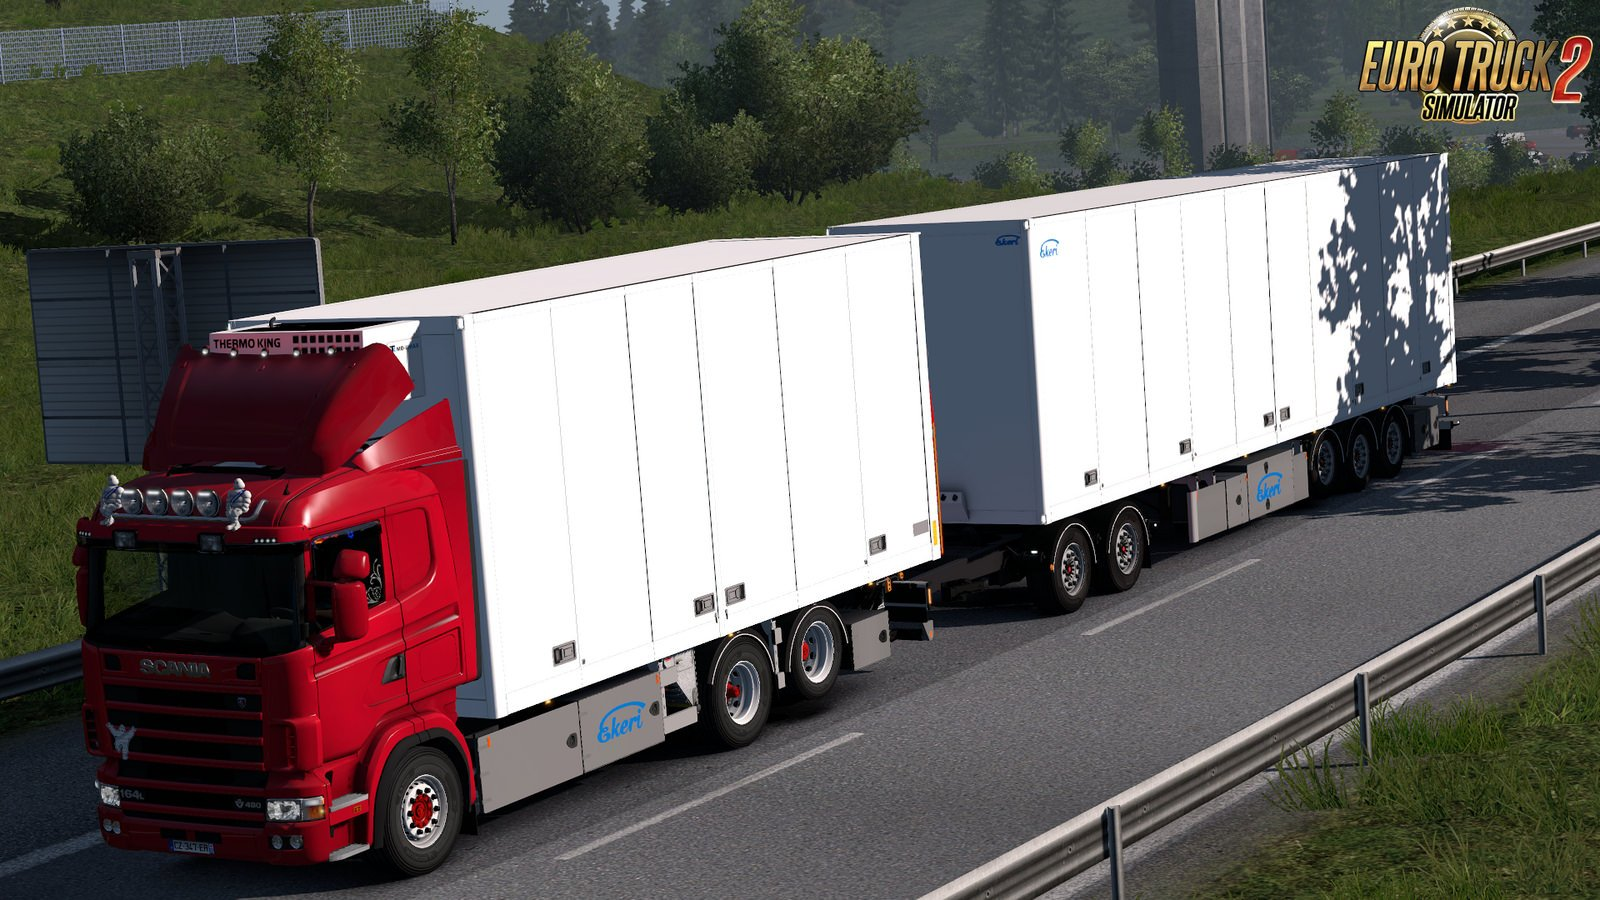 Fixed Tandem addon for RJL Scania RS and R4 v1.8.2 by Kast